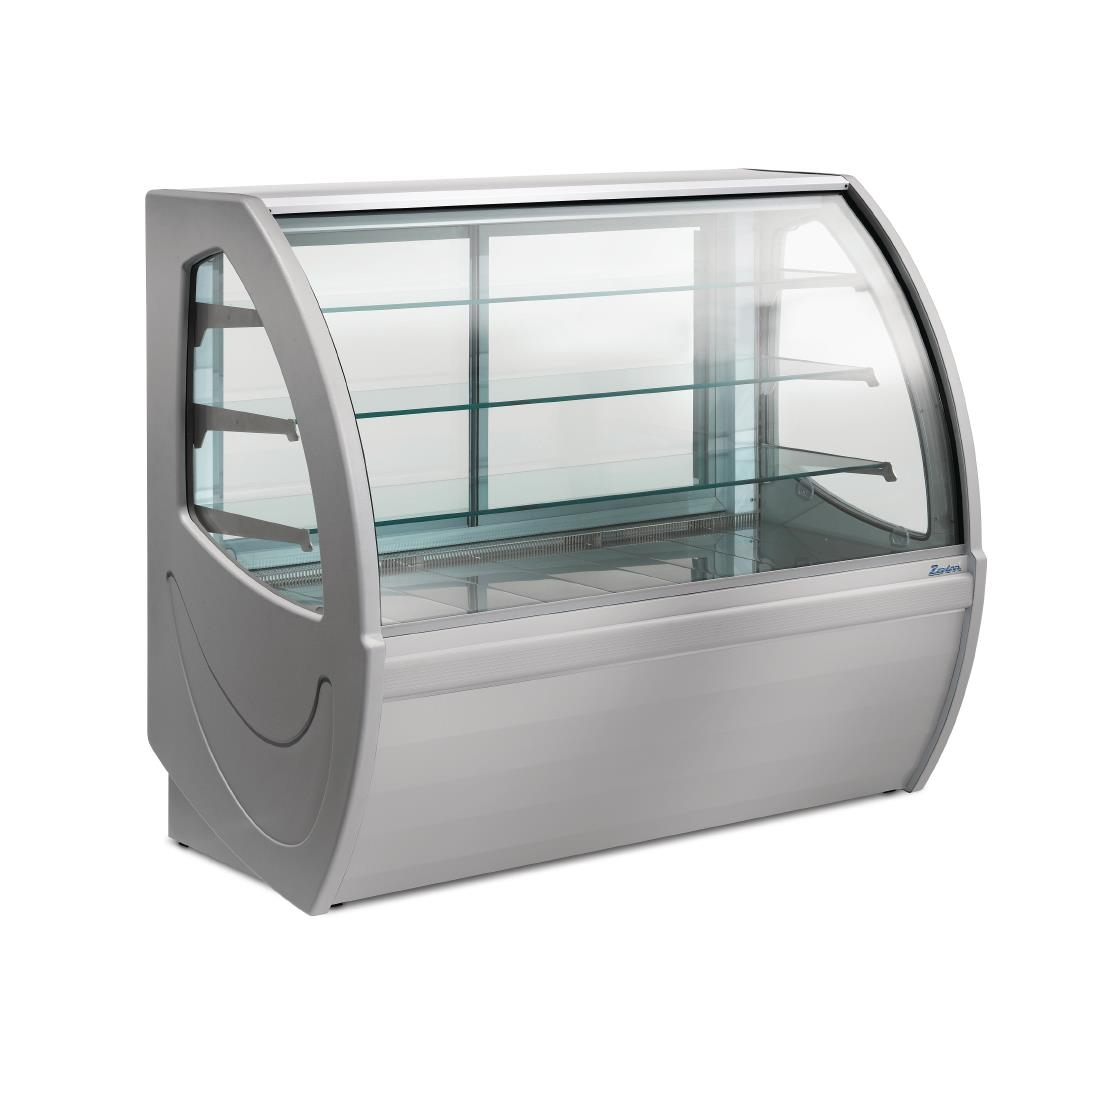 Zoin Lux LU Ventilated Bakery Serve Over Counter Chiller 1080mm LU108B